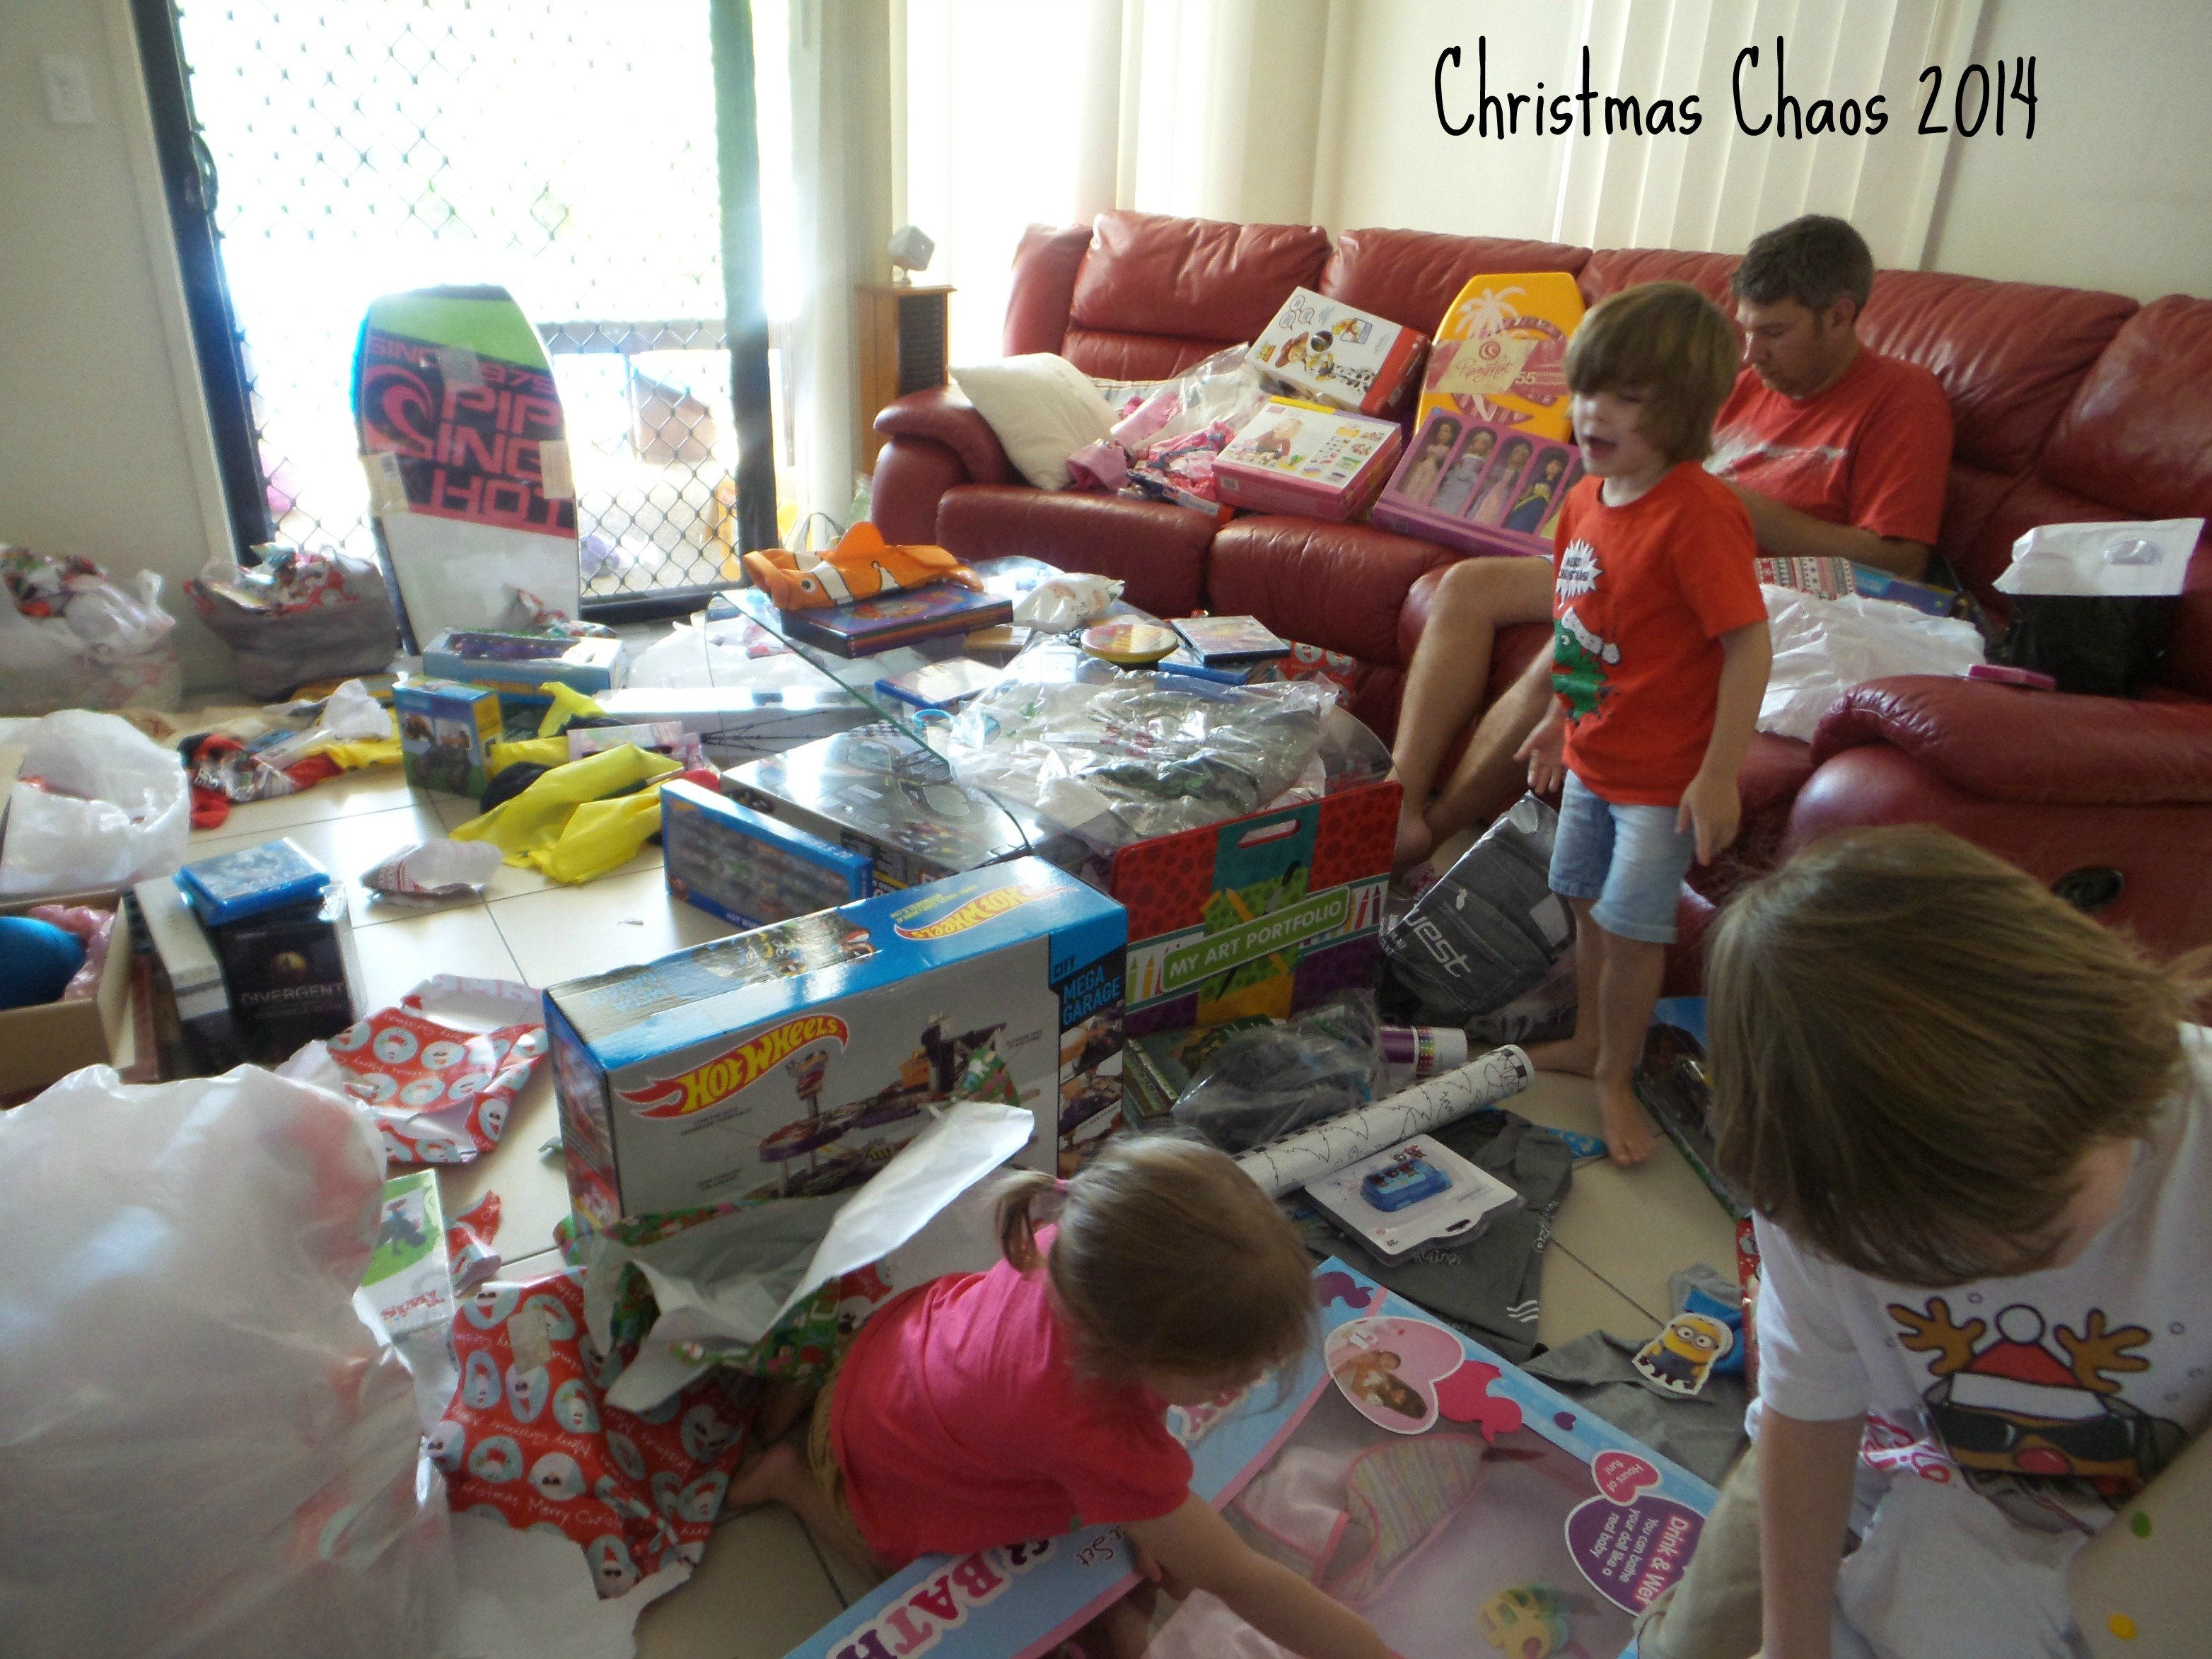 Our Christmas Day in Australia